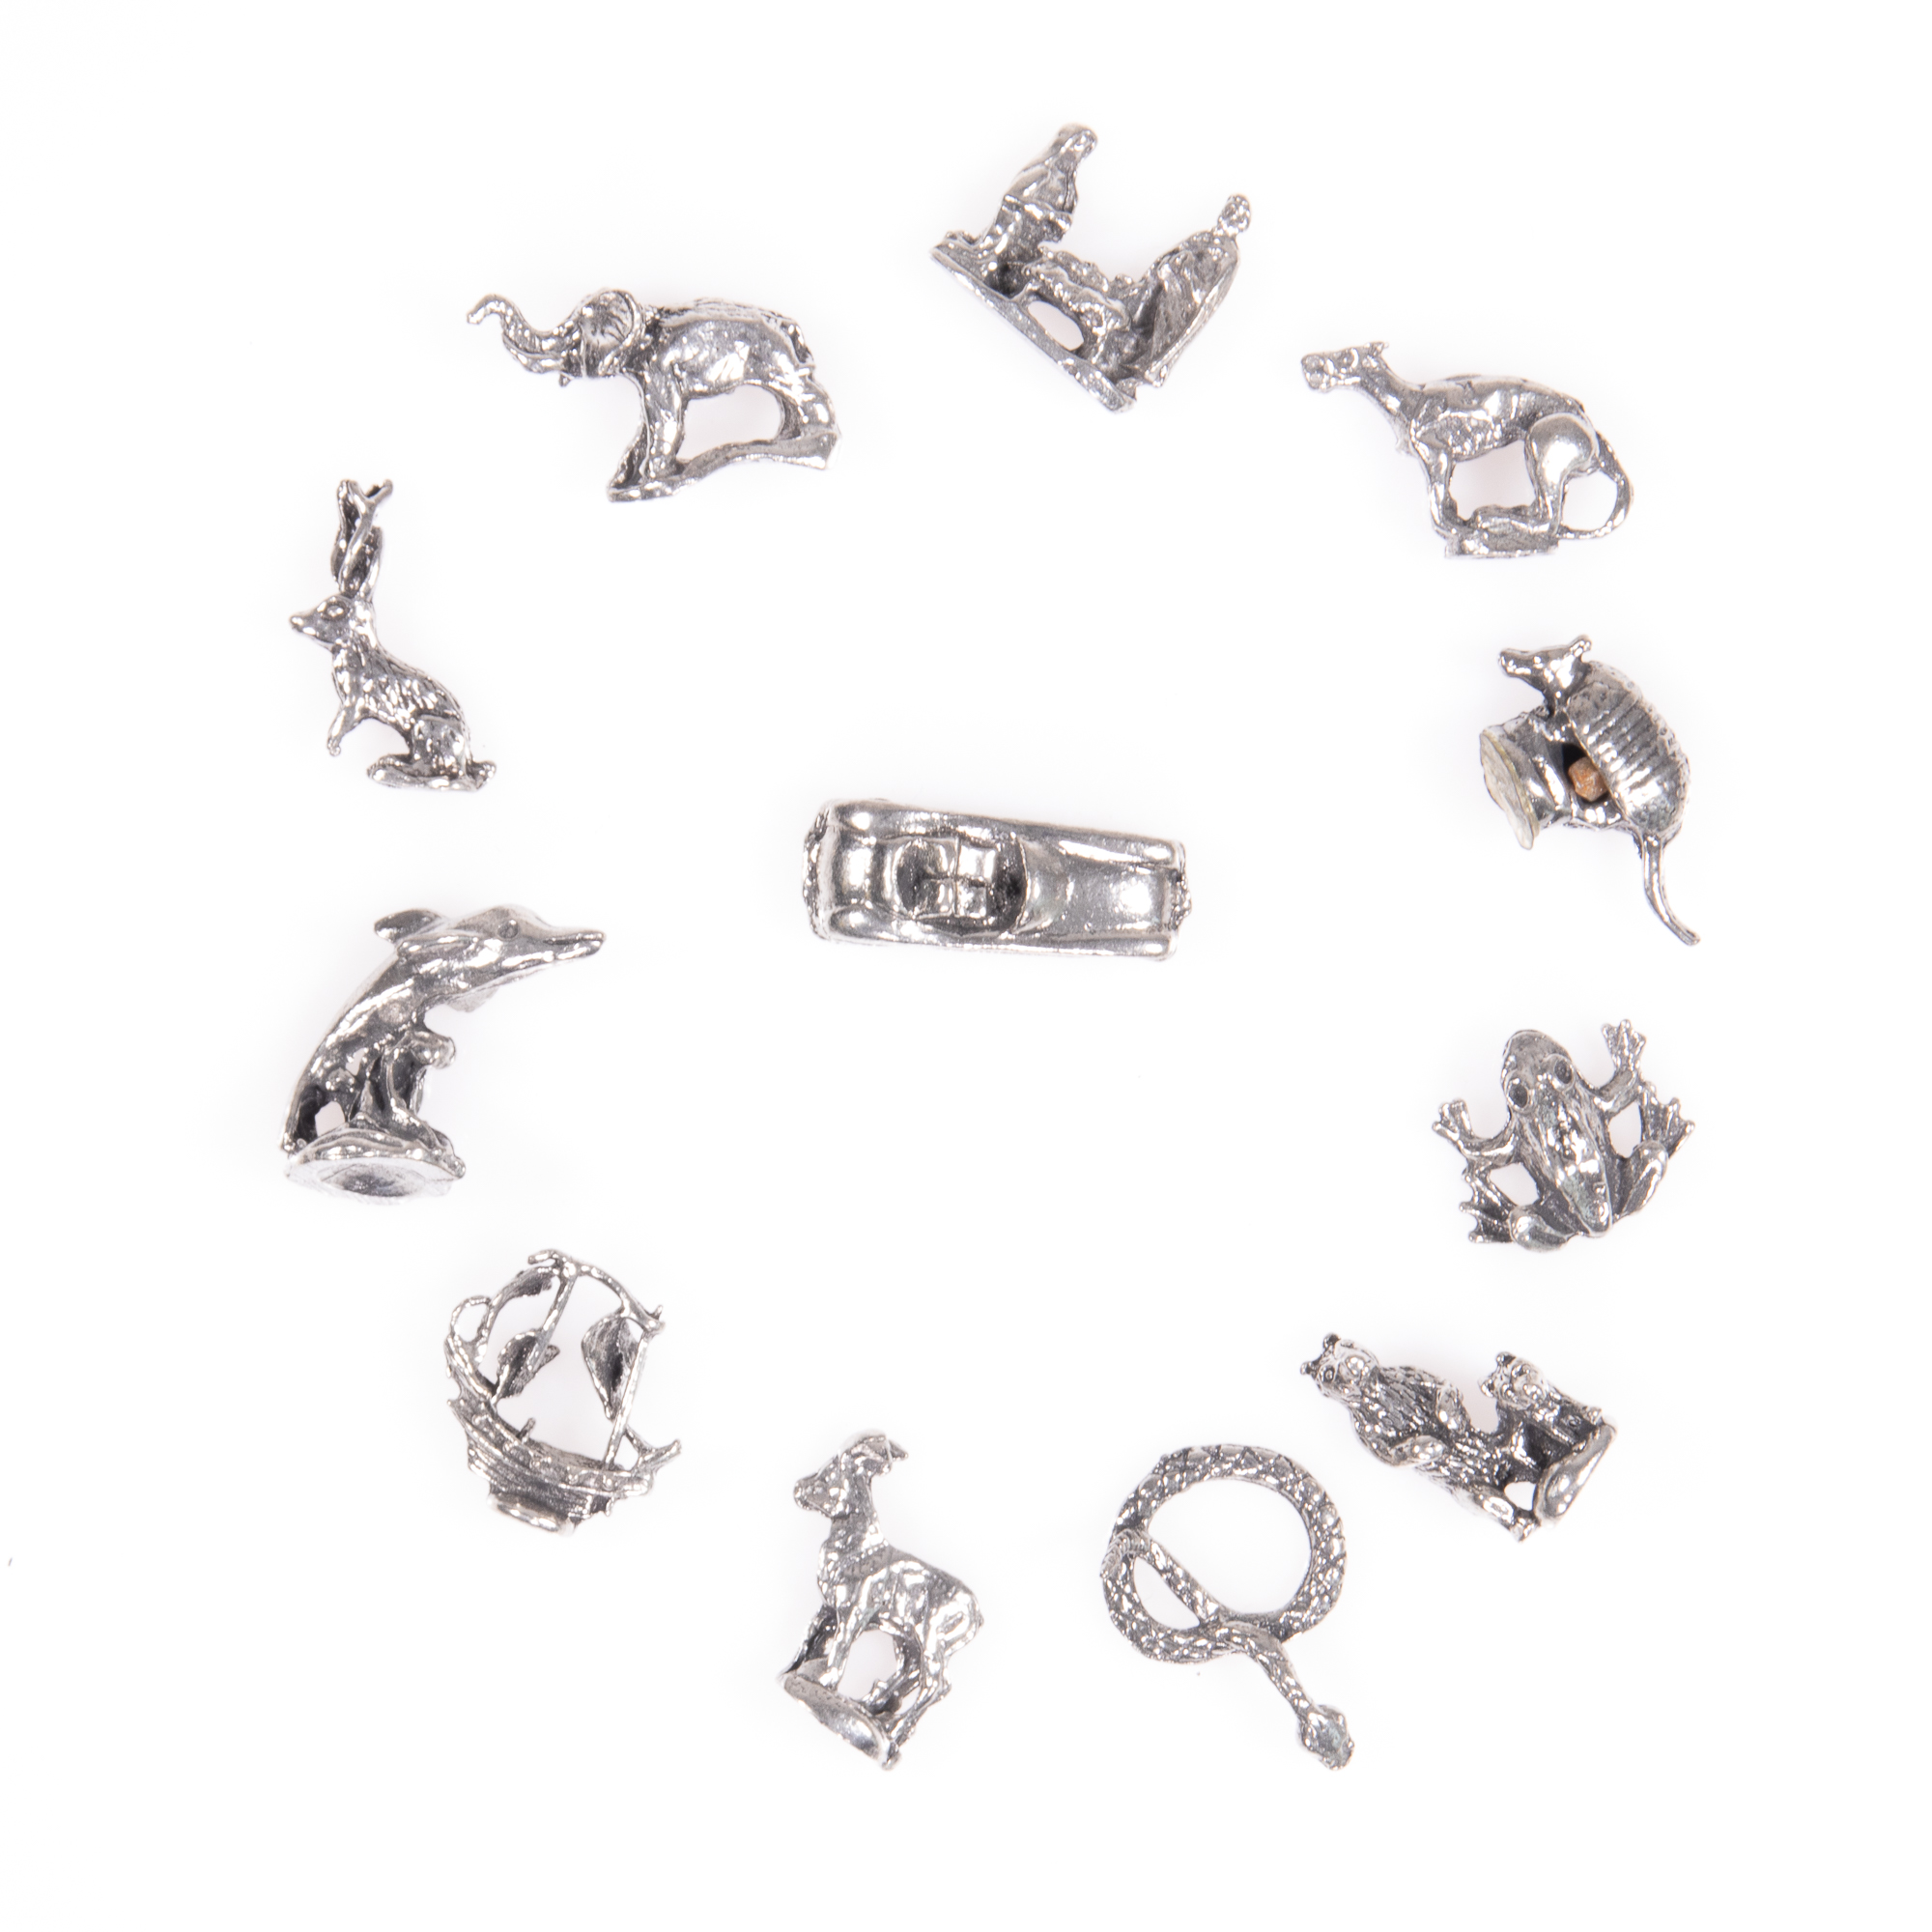 Selection of 12x Silver Novelty Charms - Image 4 of 6